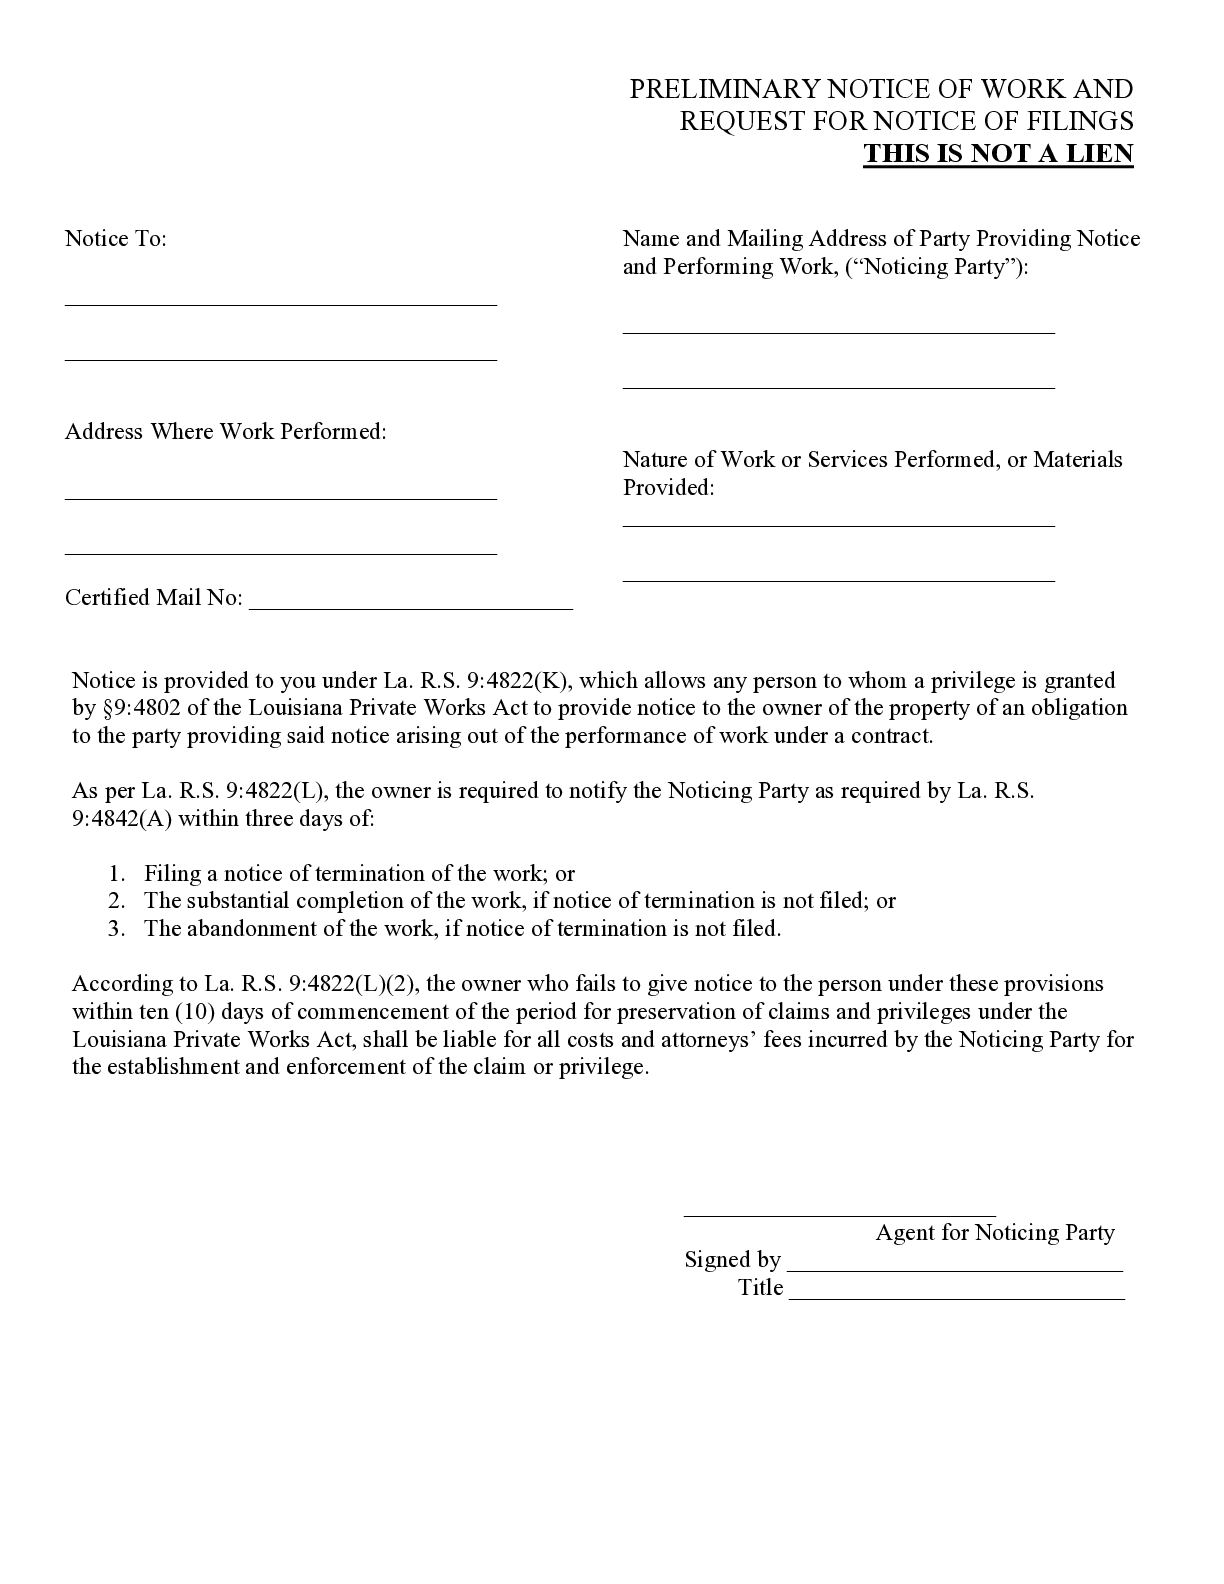 Louisiana Notice to Owner of Obligation Form